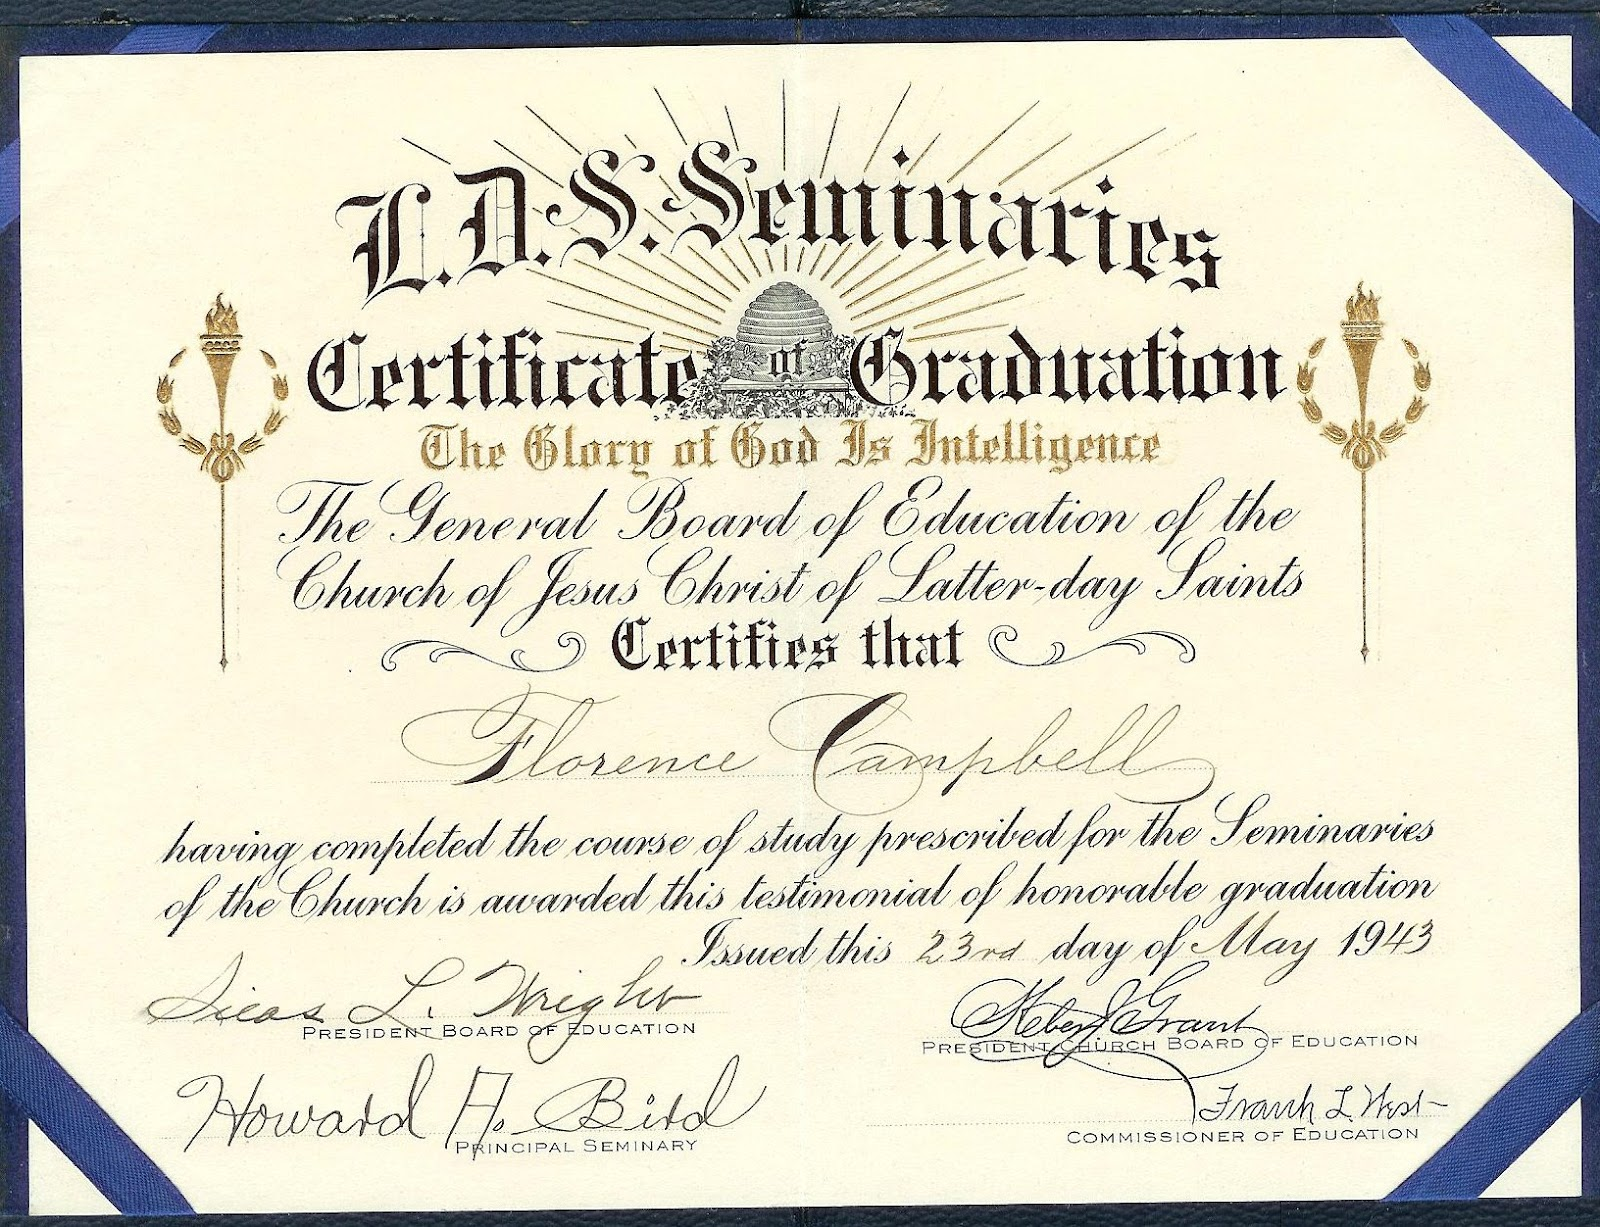 Remembering generations past march 2012 lds seminary certificate of graduation of florence campbell may 23 1943 xflitez Images